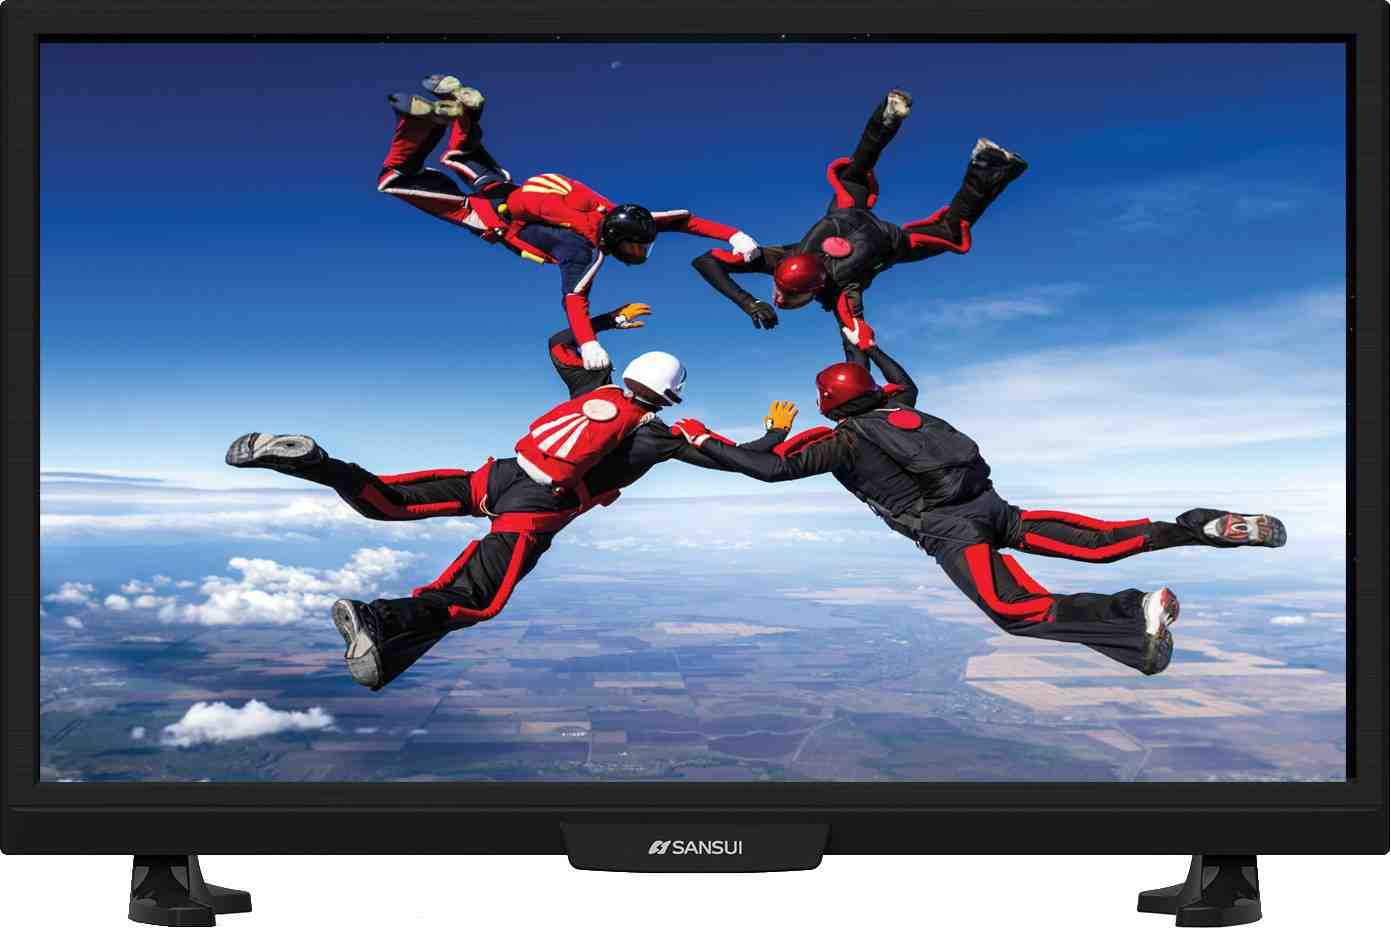 Sansui SMC32HB12XAF 32 Inch HD LED TV